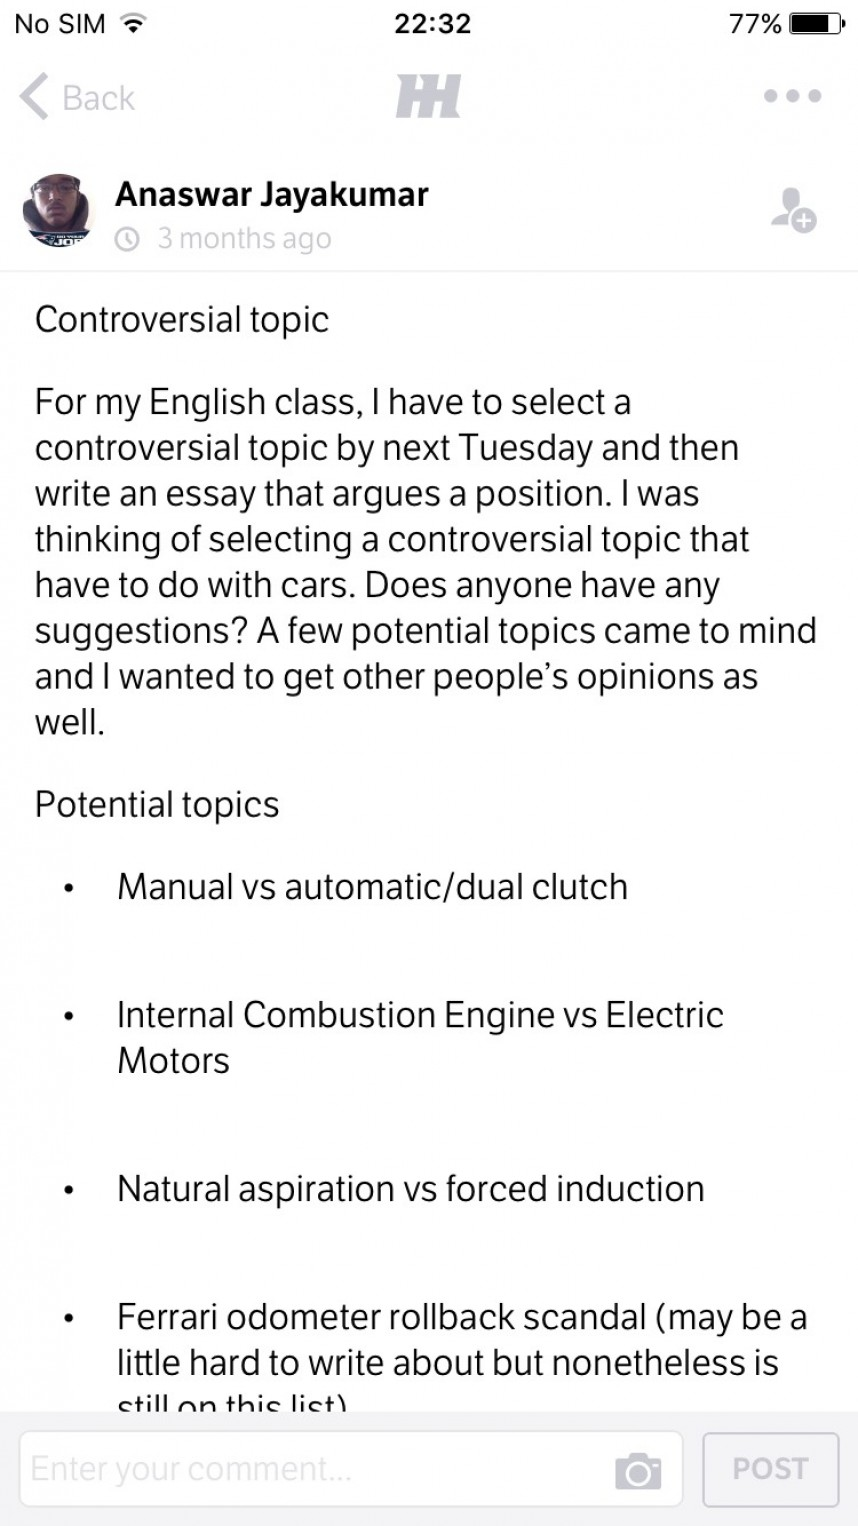 013 Writing Research Paper Outline Controversial Topic Essay Topics Example Singular A How To Write Science Apa Style Samples Of